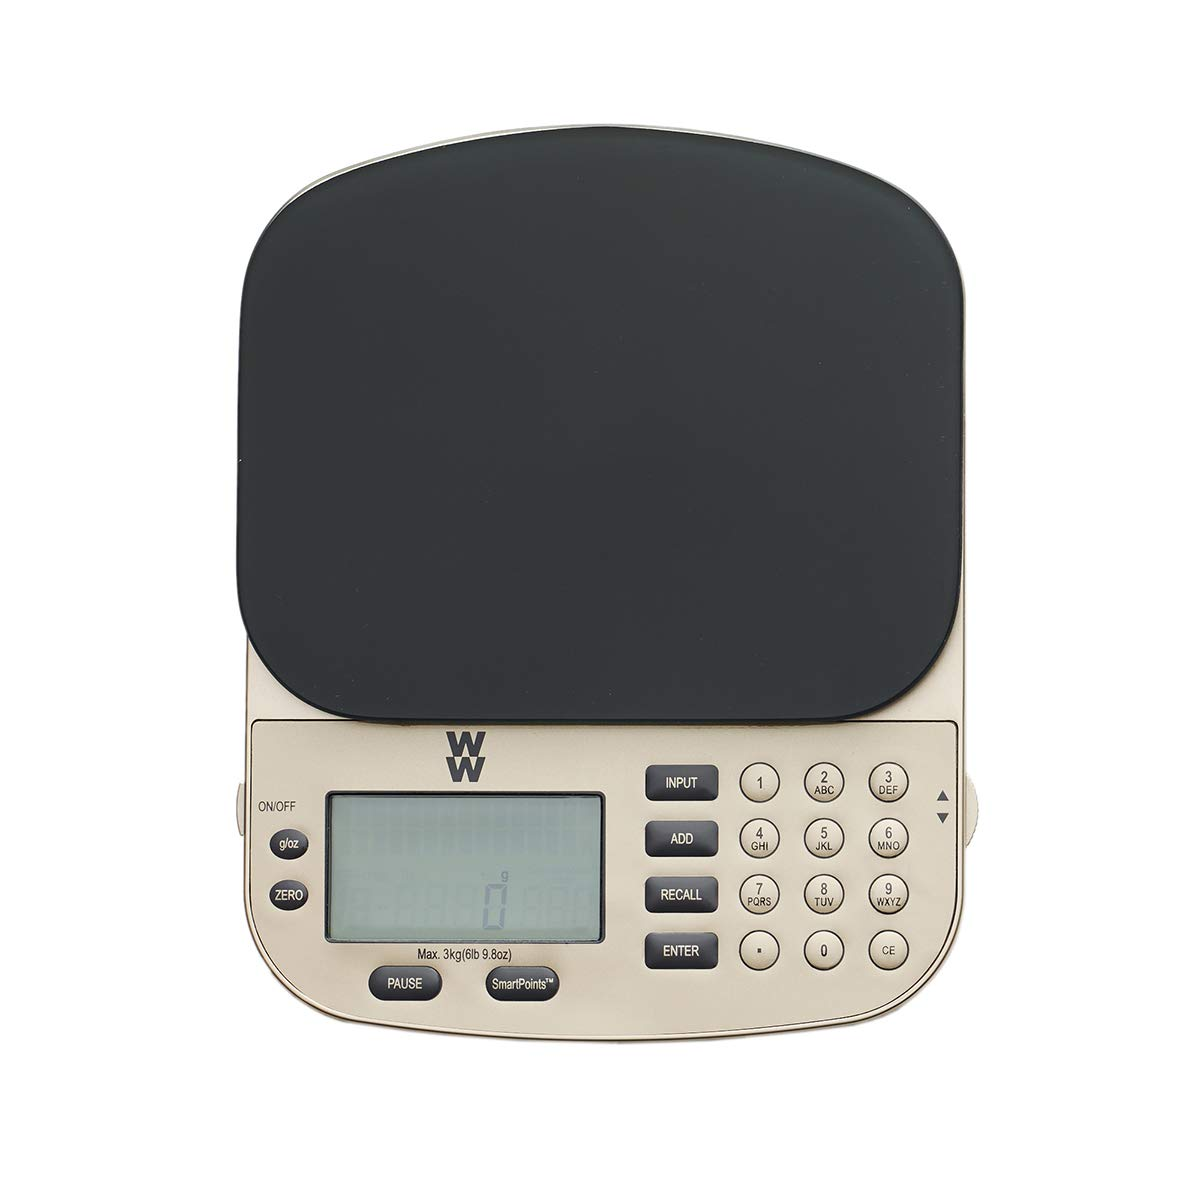 WW SmartPoints Digital Food Scale - Kitchen Scale Measures with Ounces and Grams - Weight Watchers Reimagined by WW